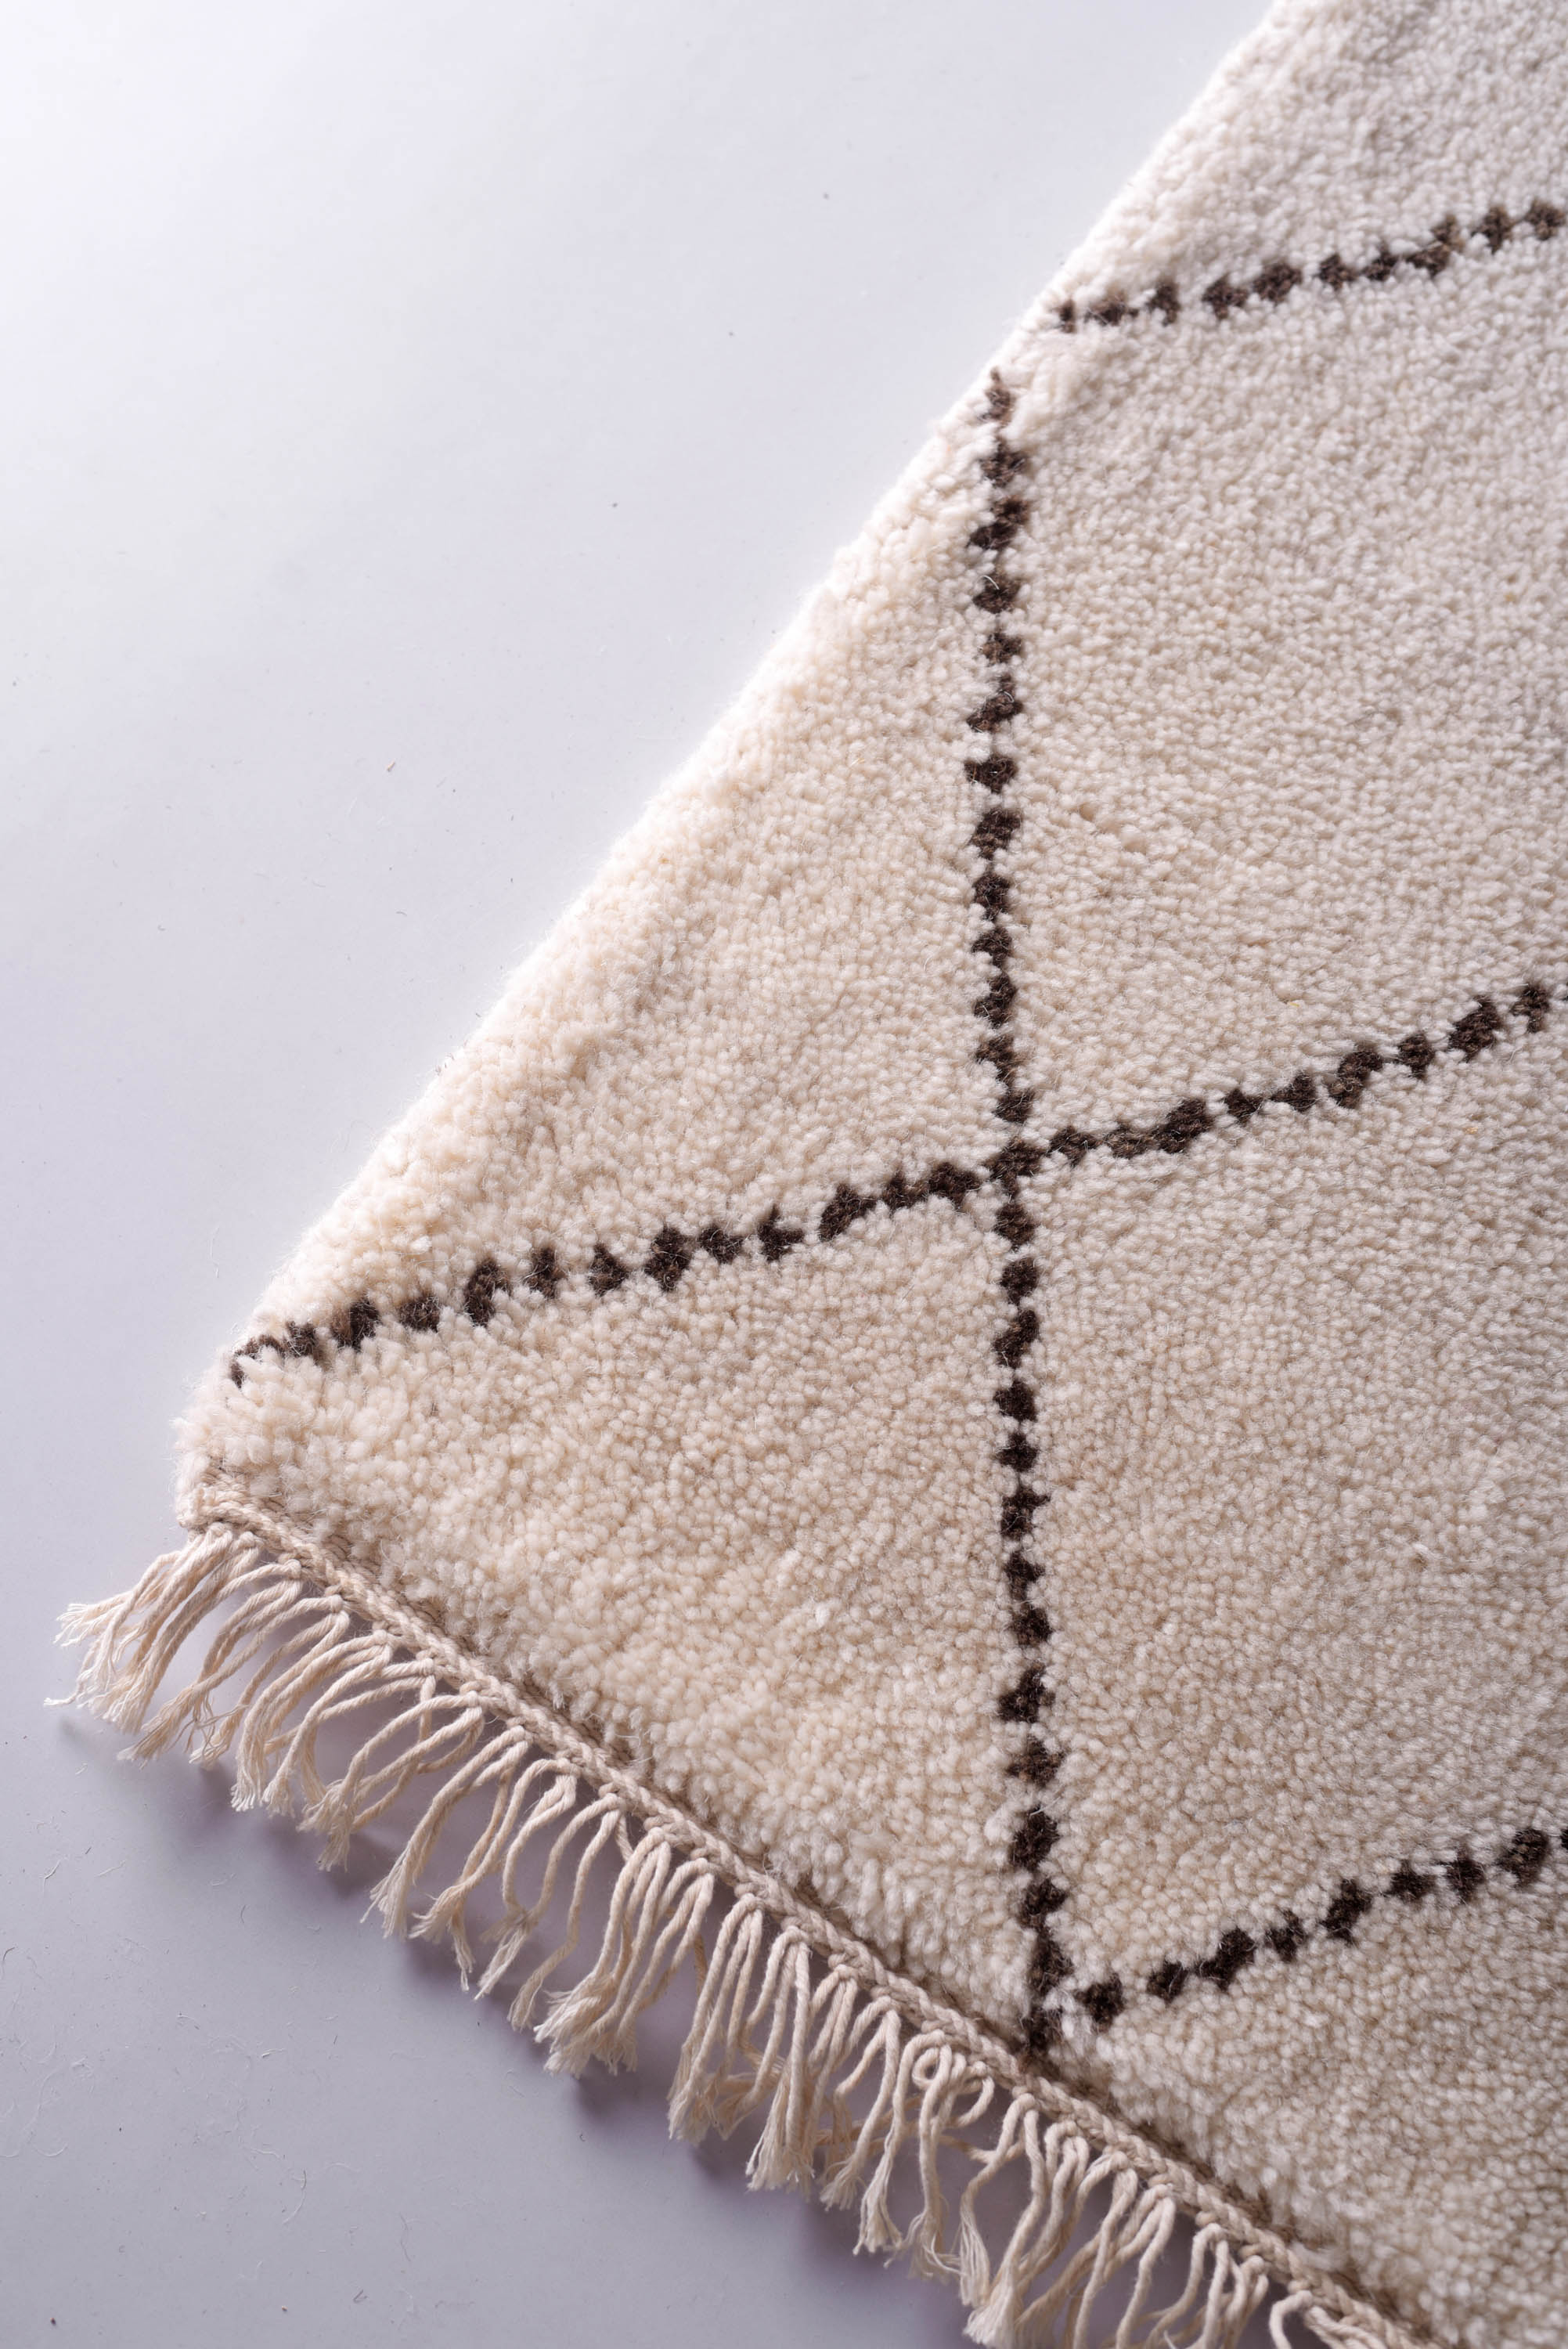 Moroccan wool rug, white and black color, hand tufted, wool and cotton mix, size 48x72 inches